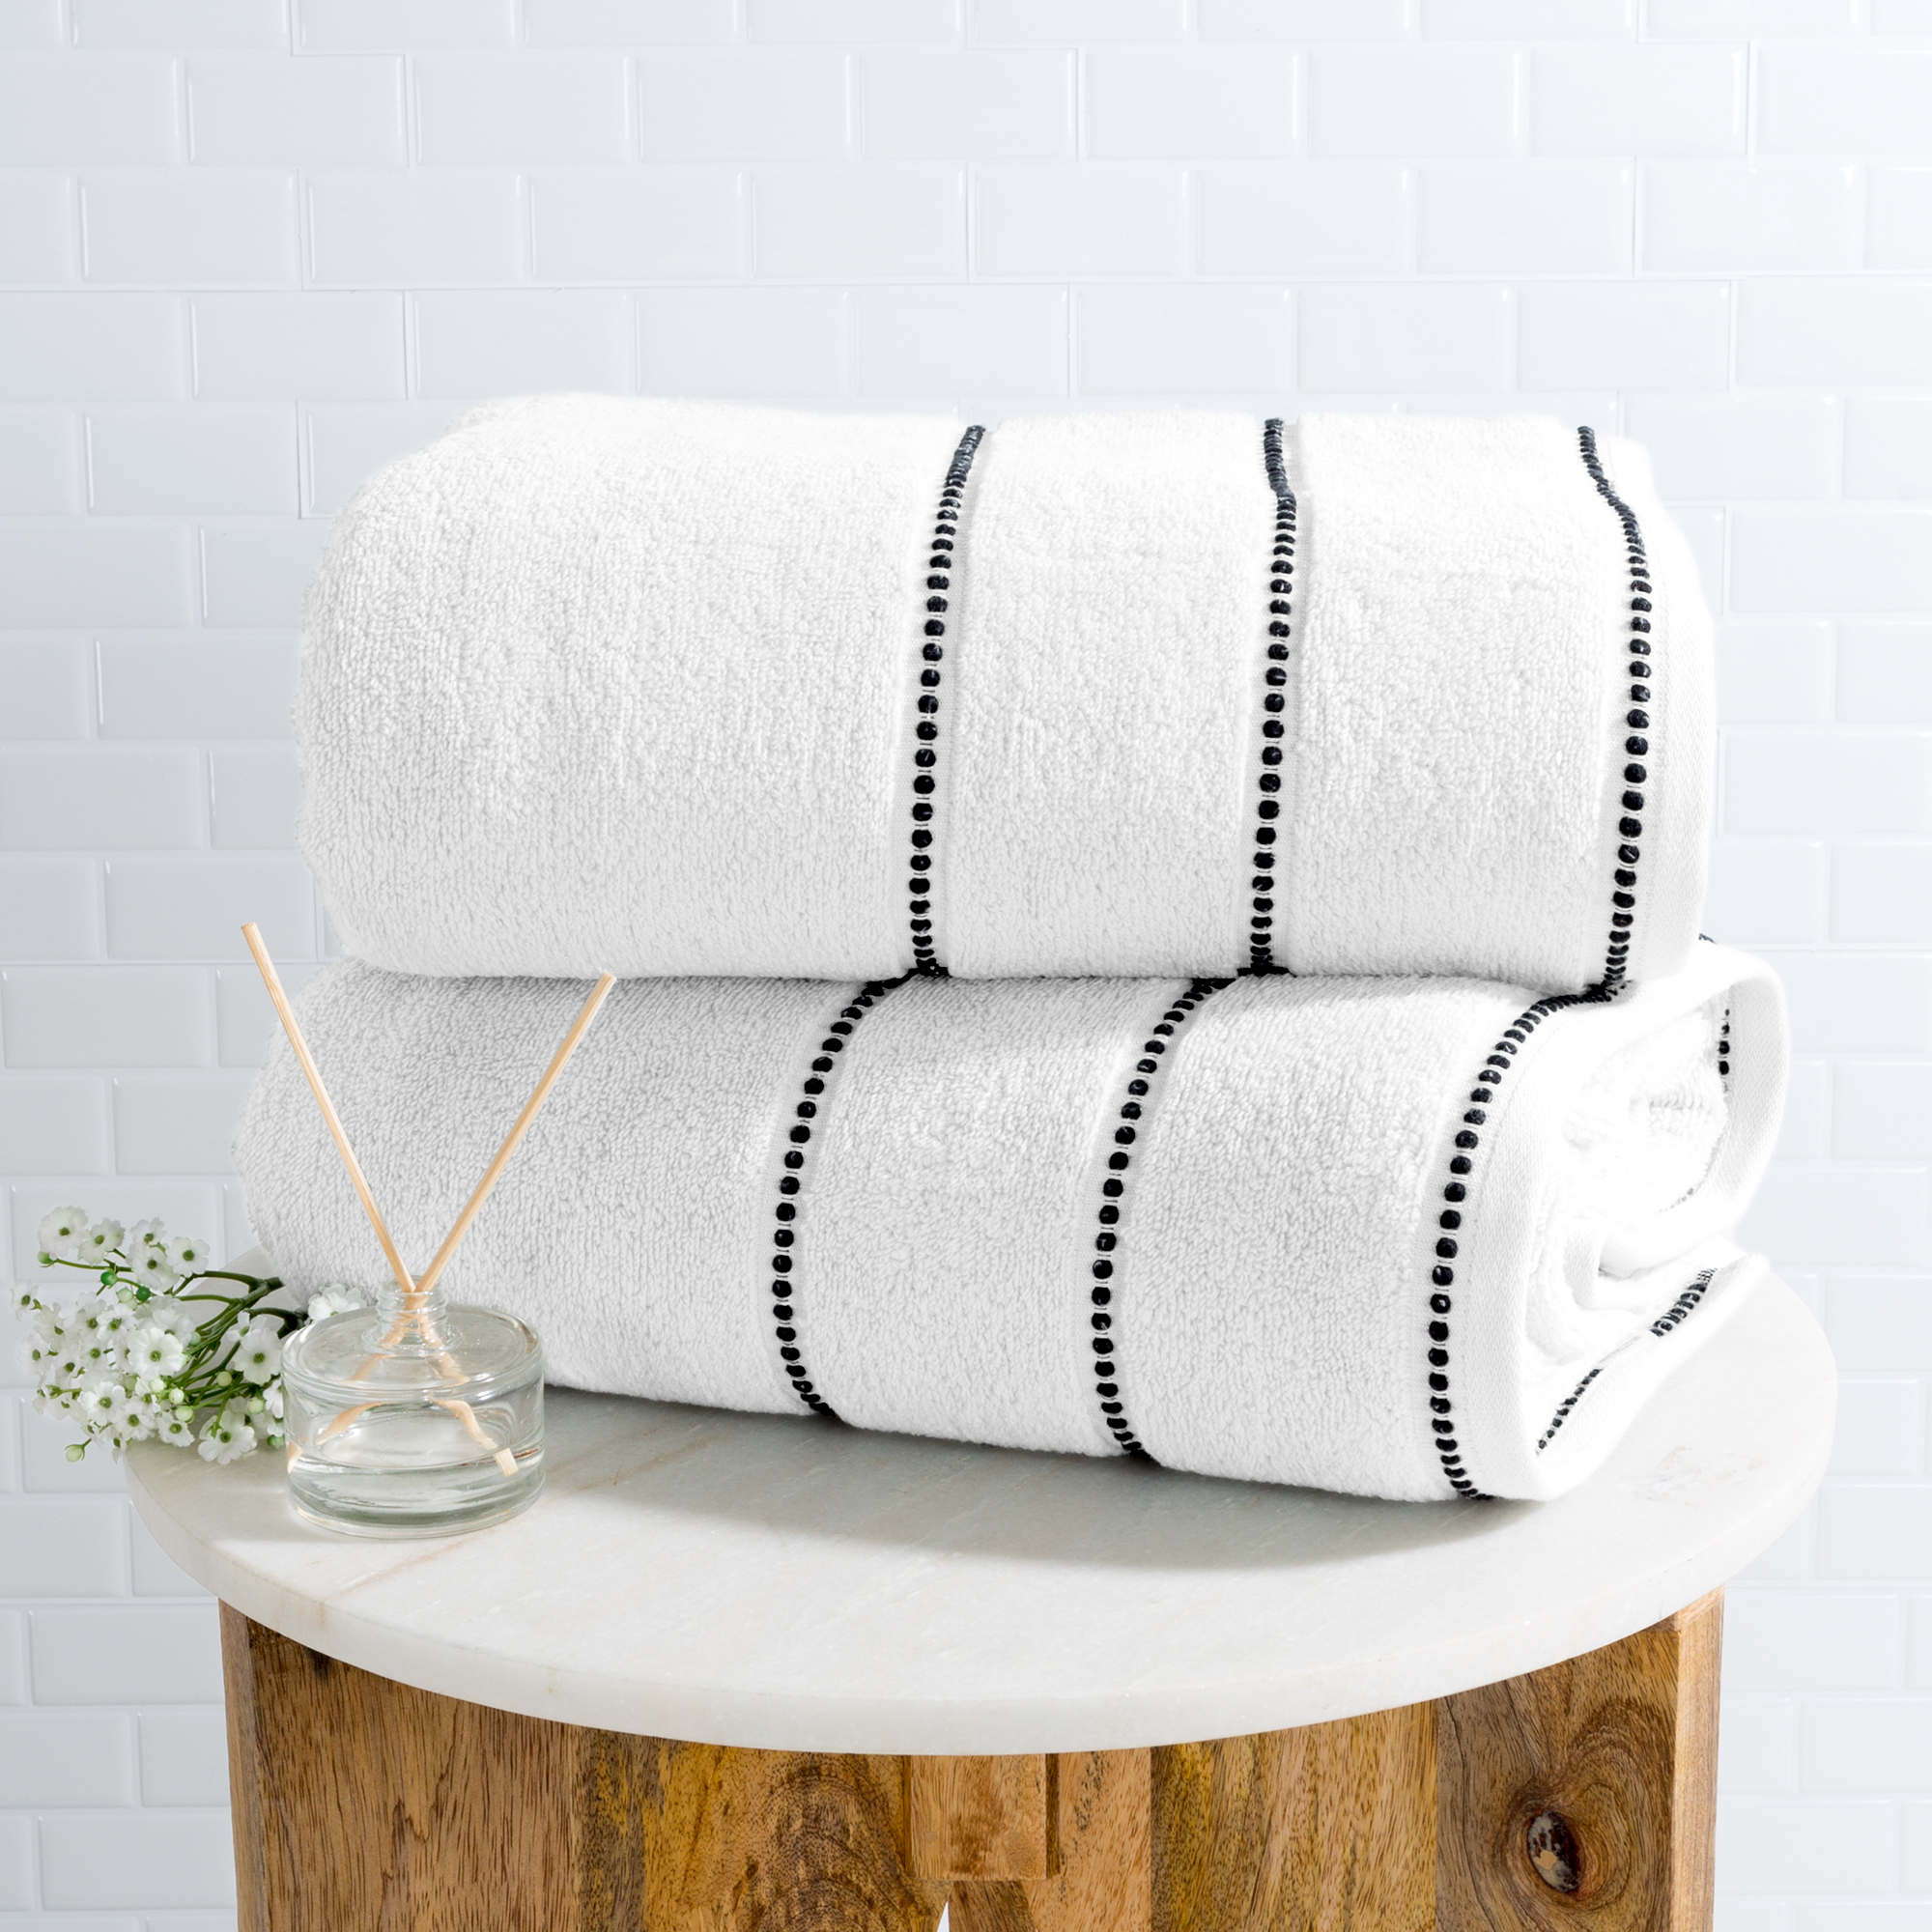 Luxurious Huge 34 x 68 In Cotton Towel Set- 2 Piece Bath Sheet Set Made From 100% Plush Cotton- Quick Dry, Soft and Absorbent White